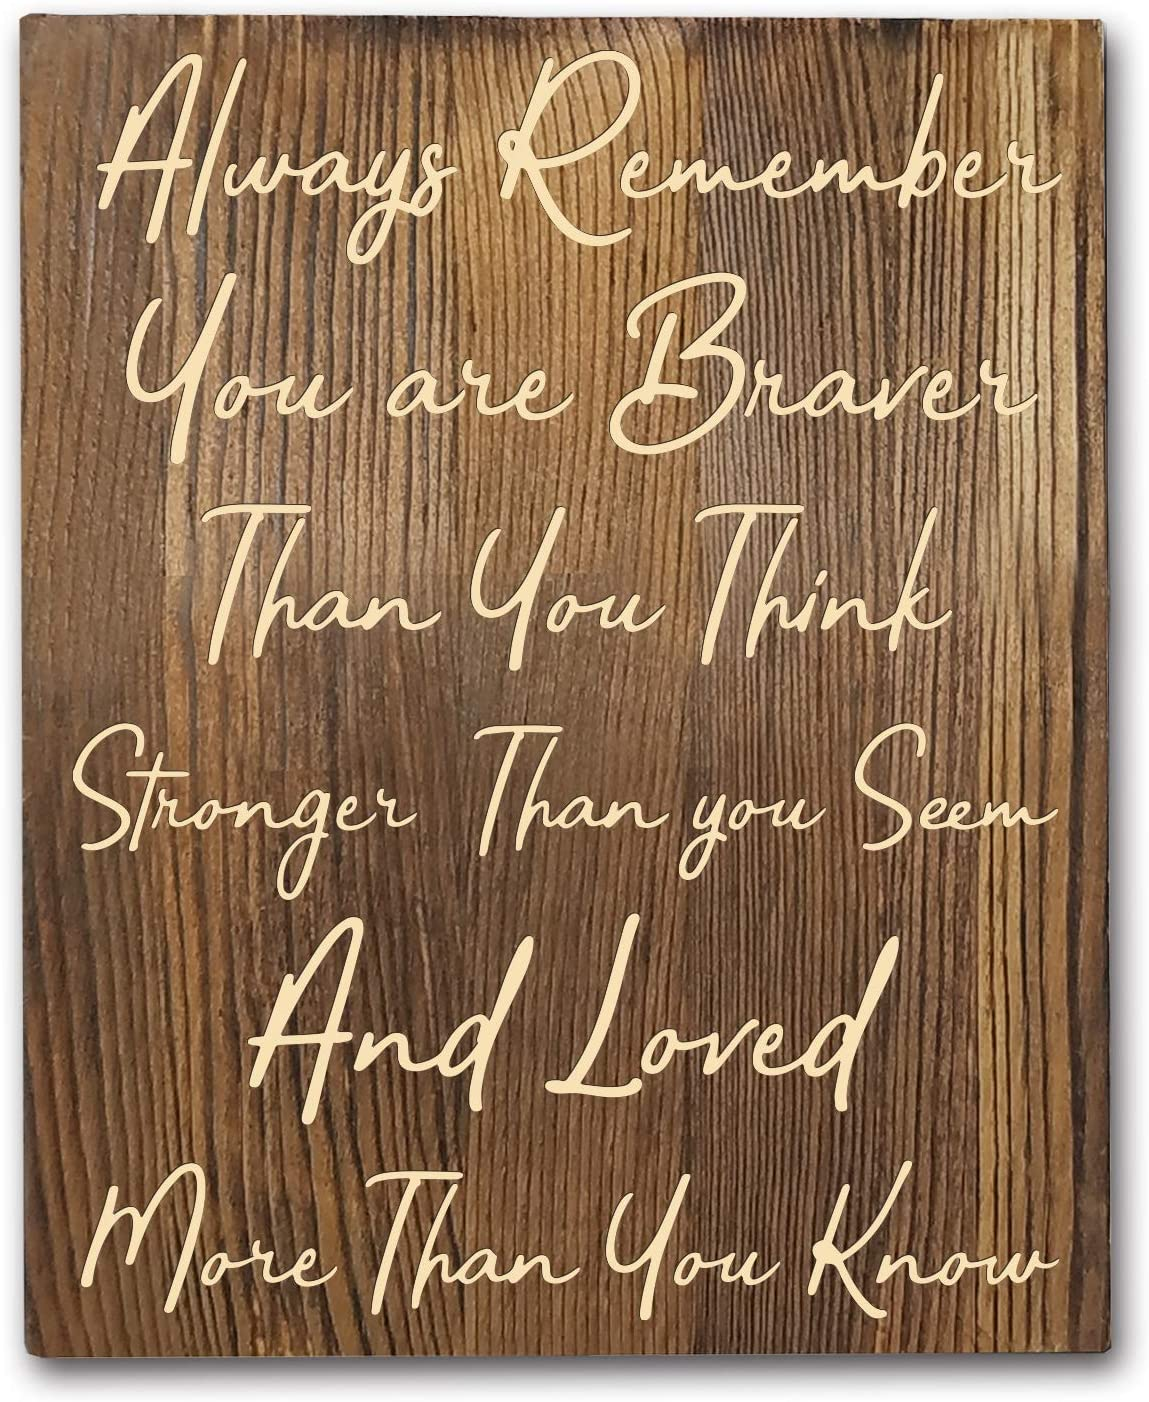 Winnie The Pooh Quotes Rustic Wood Wall Art Decor- 8